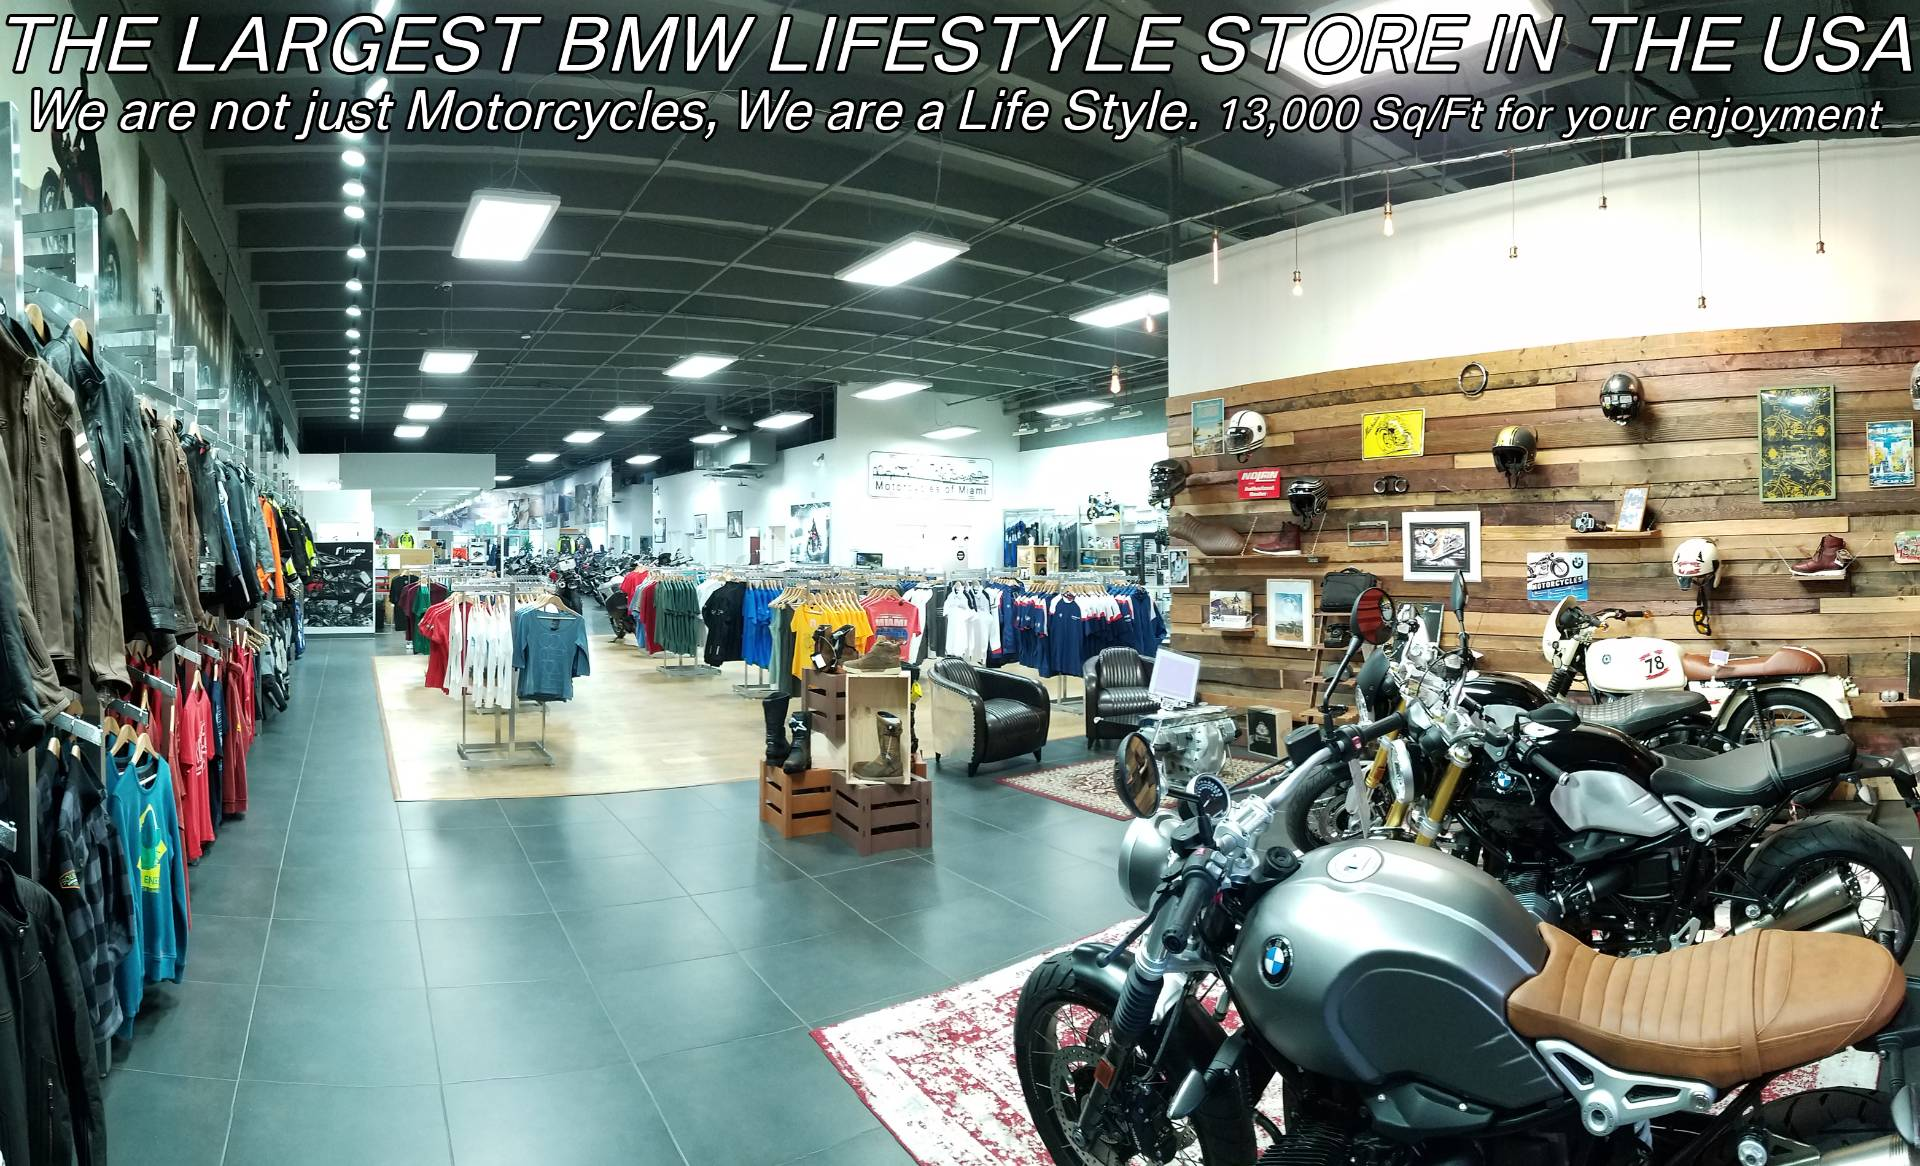 New 2019 BMW F 850 GSA for sale, BMW F 850GSA for sale, BMW Motorcycle F850GSA, new BMW 850 Adventure, Adventure. BMW Motorcycles of Miami, Motorcycles of Miami, Motorcycles Miami, New Motorcycles, Used Motorcycles, pre-owned. #BMWMotorcyclesOfMiami #MotorcyclesOfMiami #MotorcyclesMiami - Photo 33